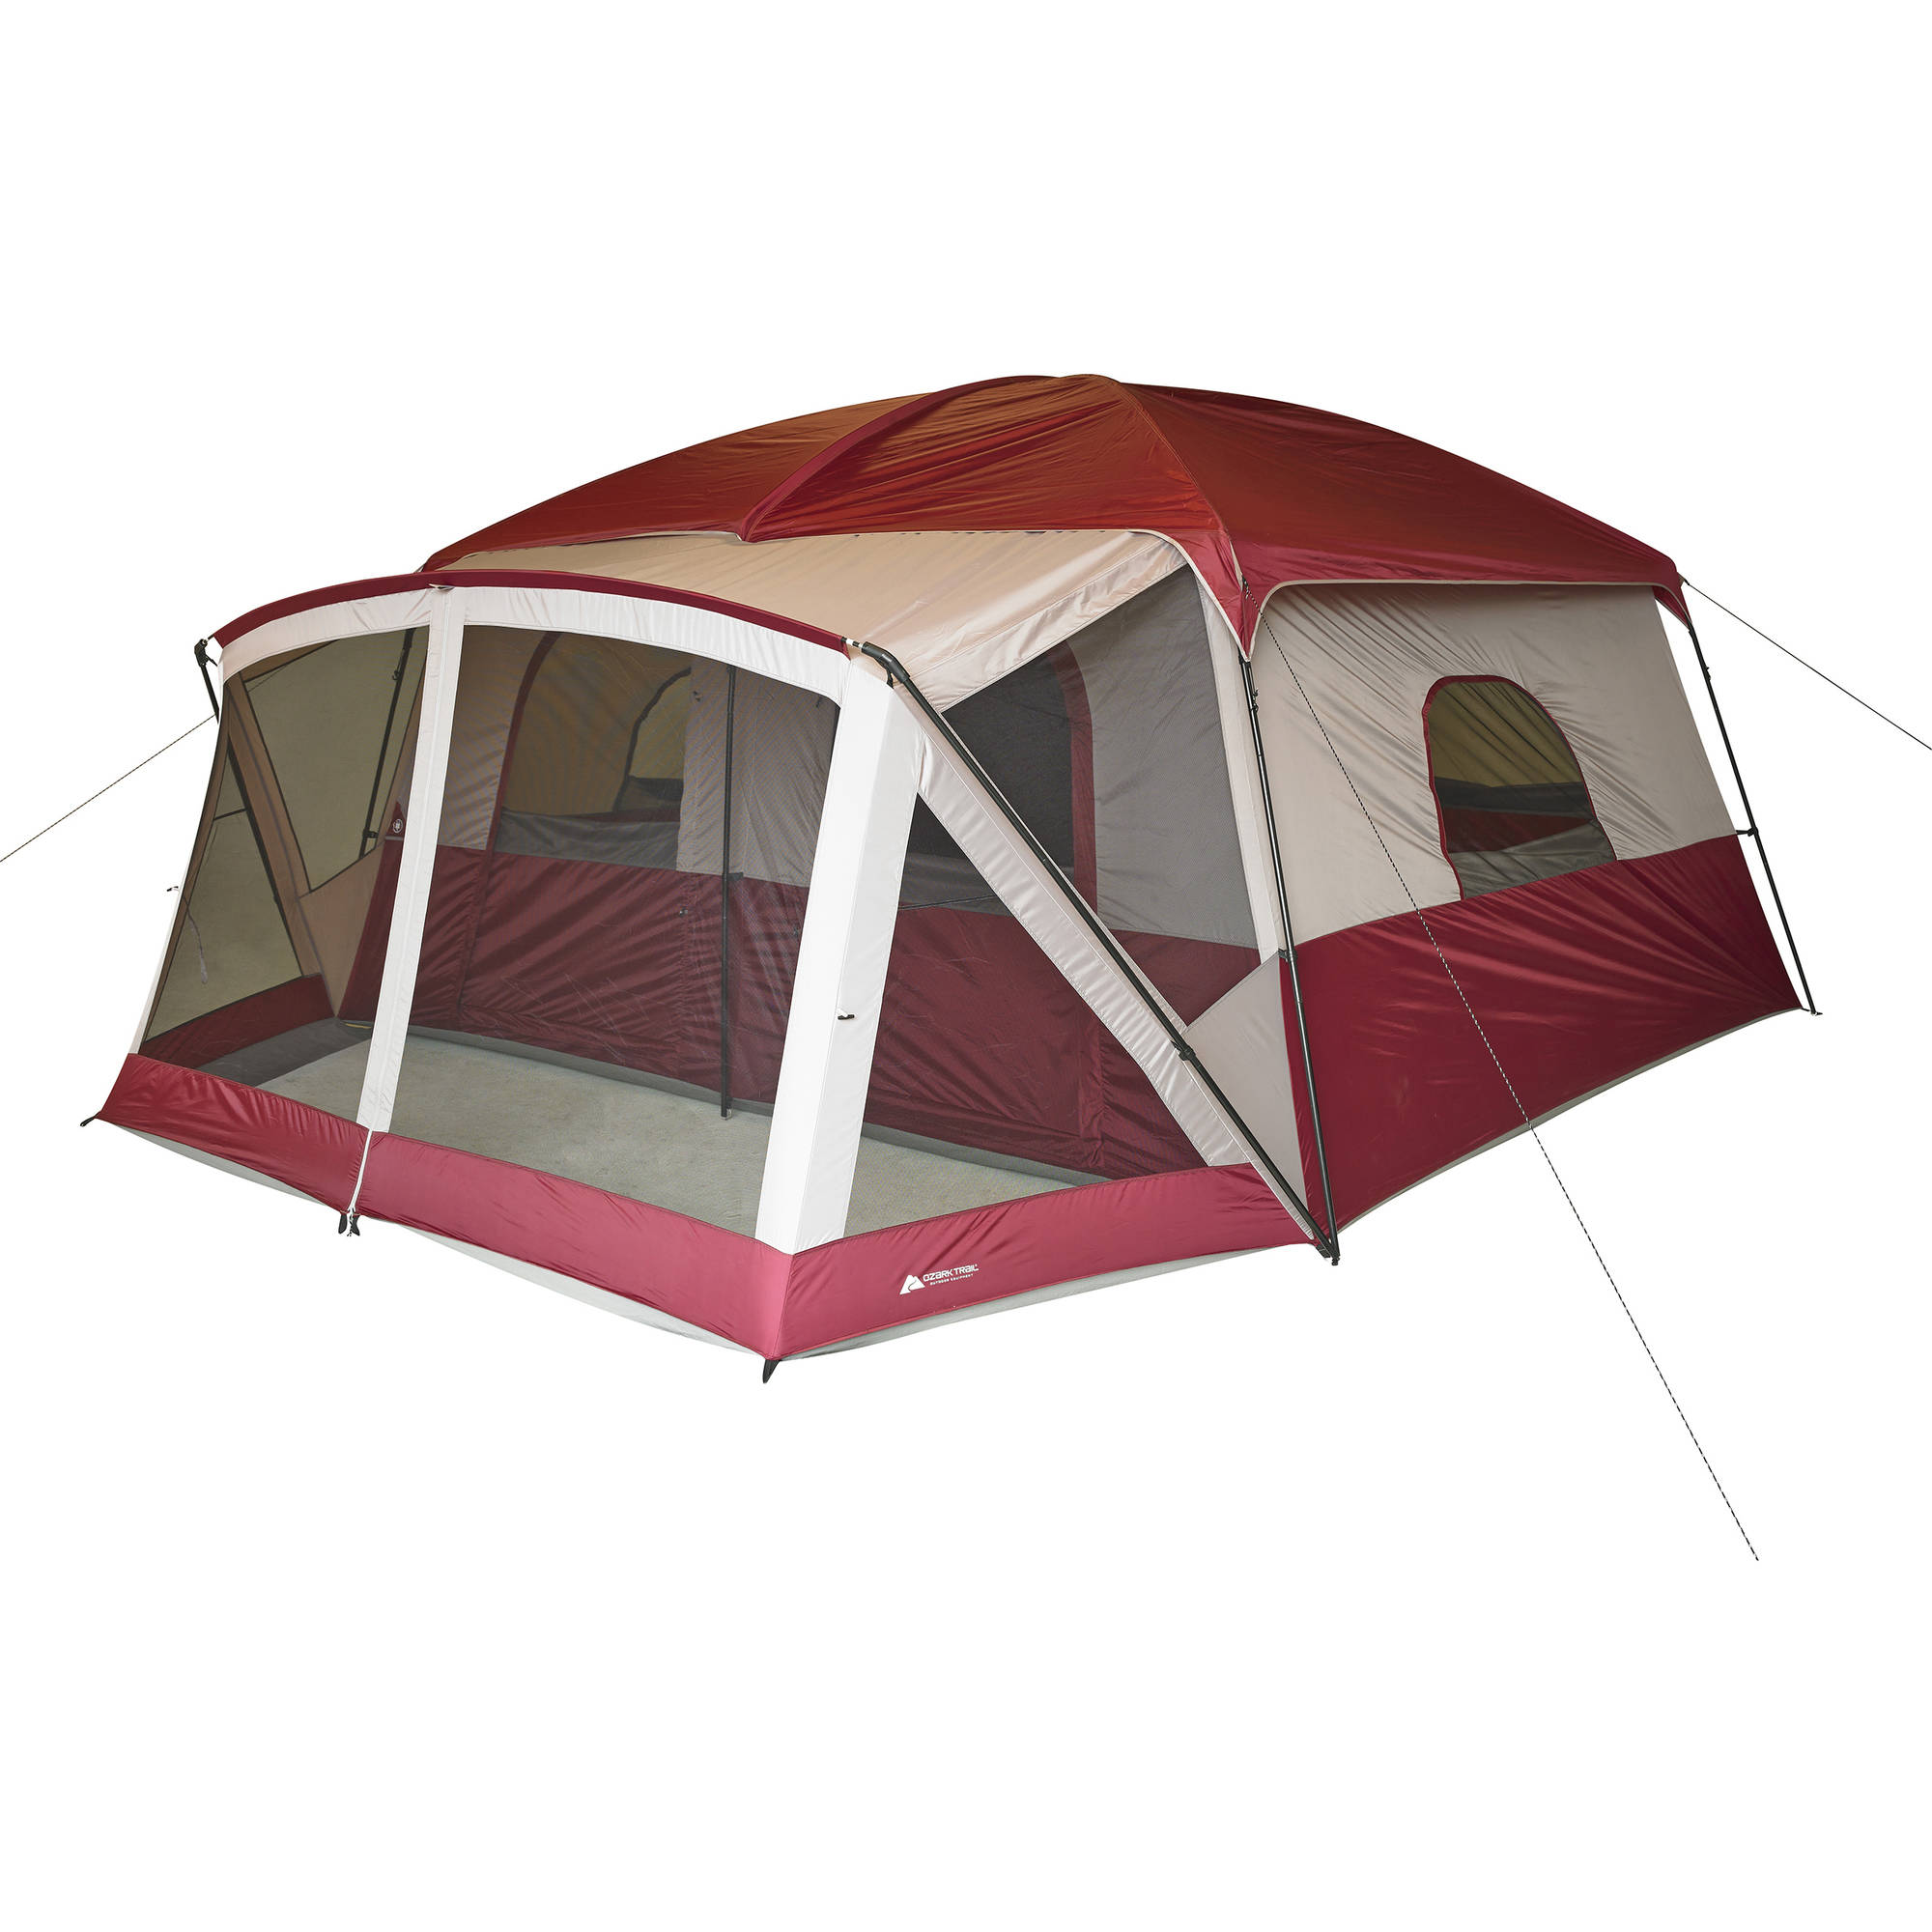 Ozark Trail 12-Person Cabin Tent with Screen Porch  sc 1 st  Walmart & Screened Tents - Walmart.com